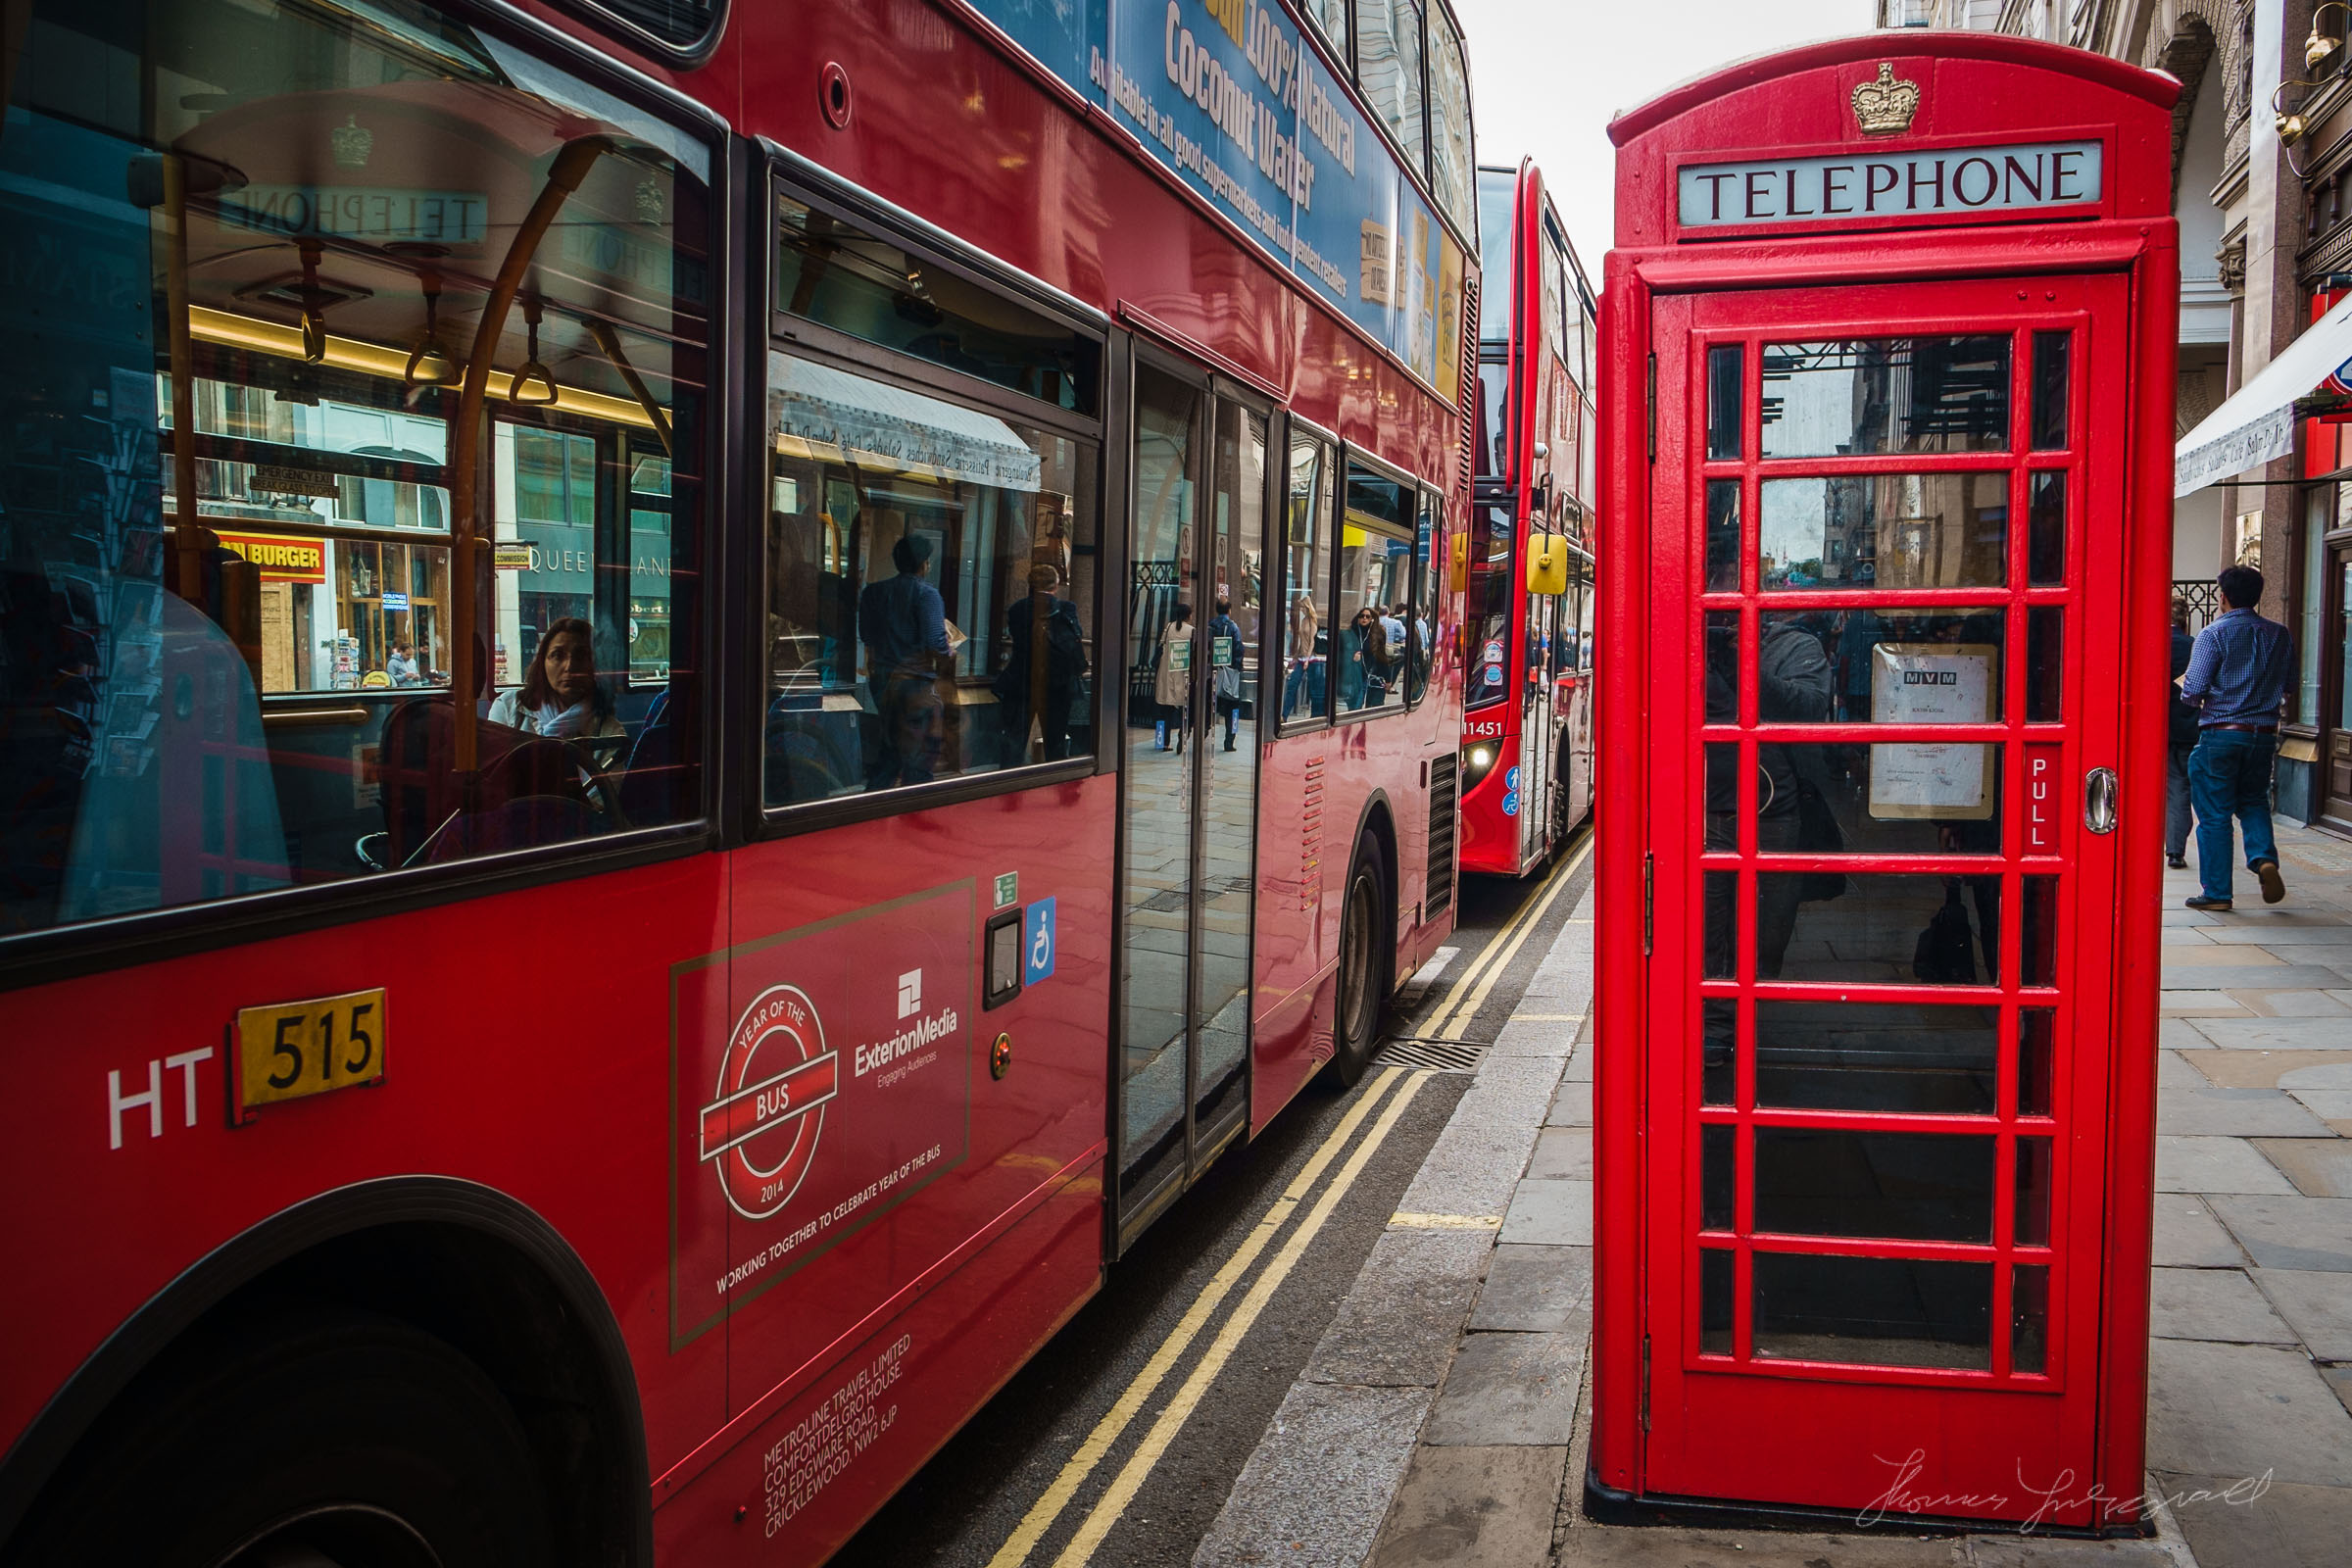 Telephone box and Bus